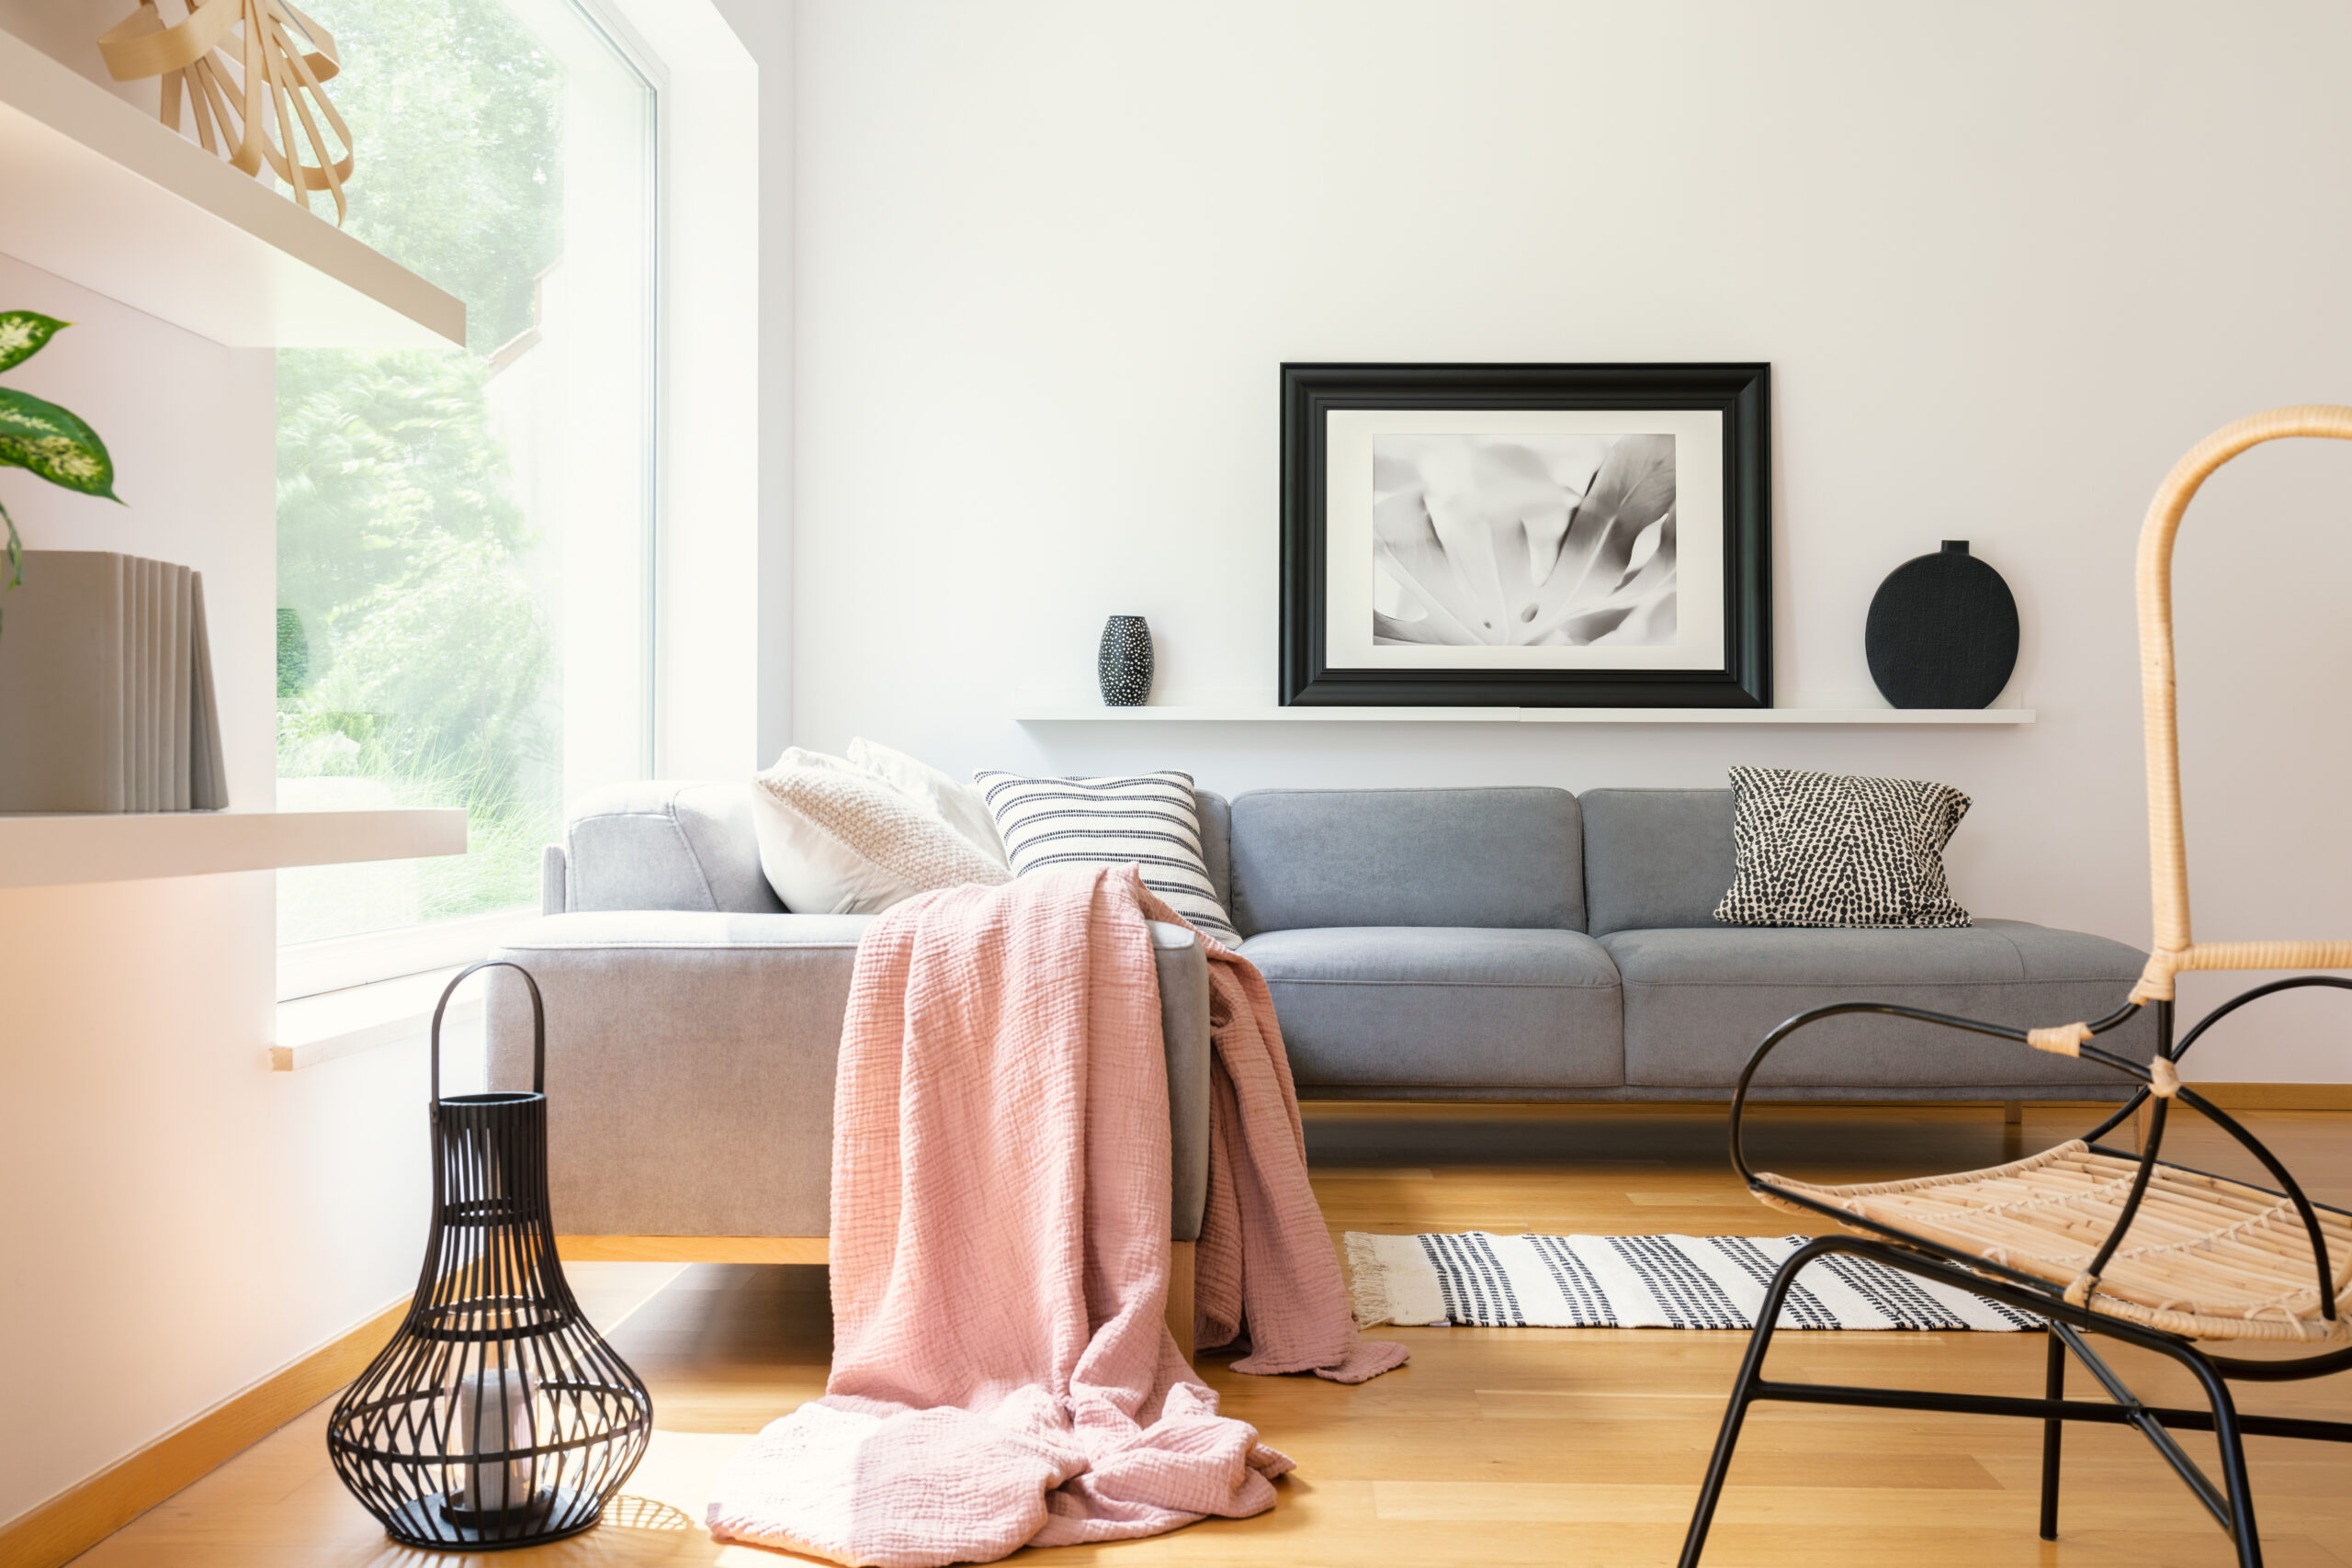 Pastel pink blanket thrown on corner couch standing in white living room interior with simple poster, lantern, decor and big window in the real photo